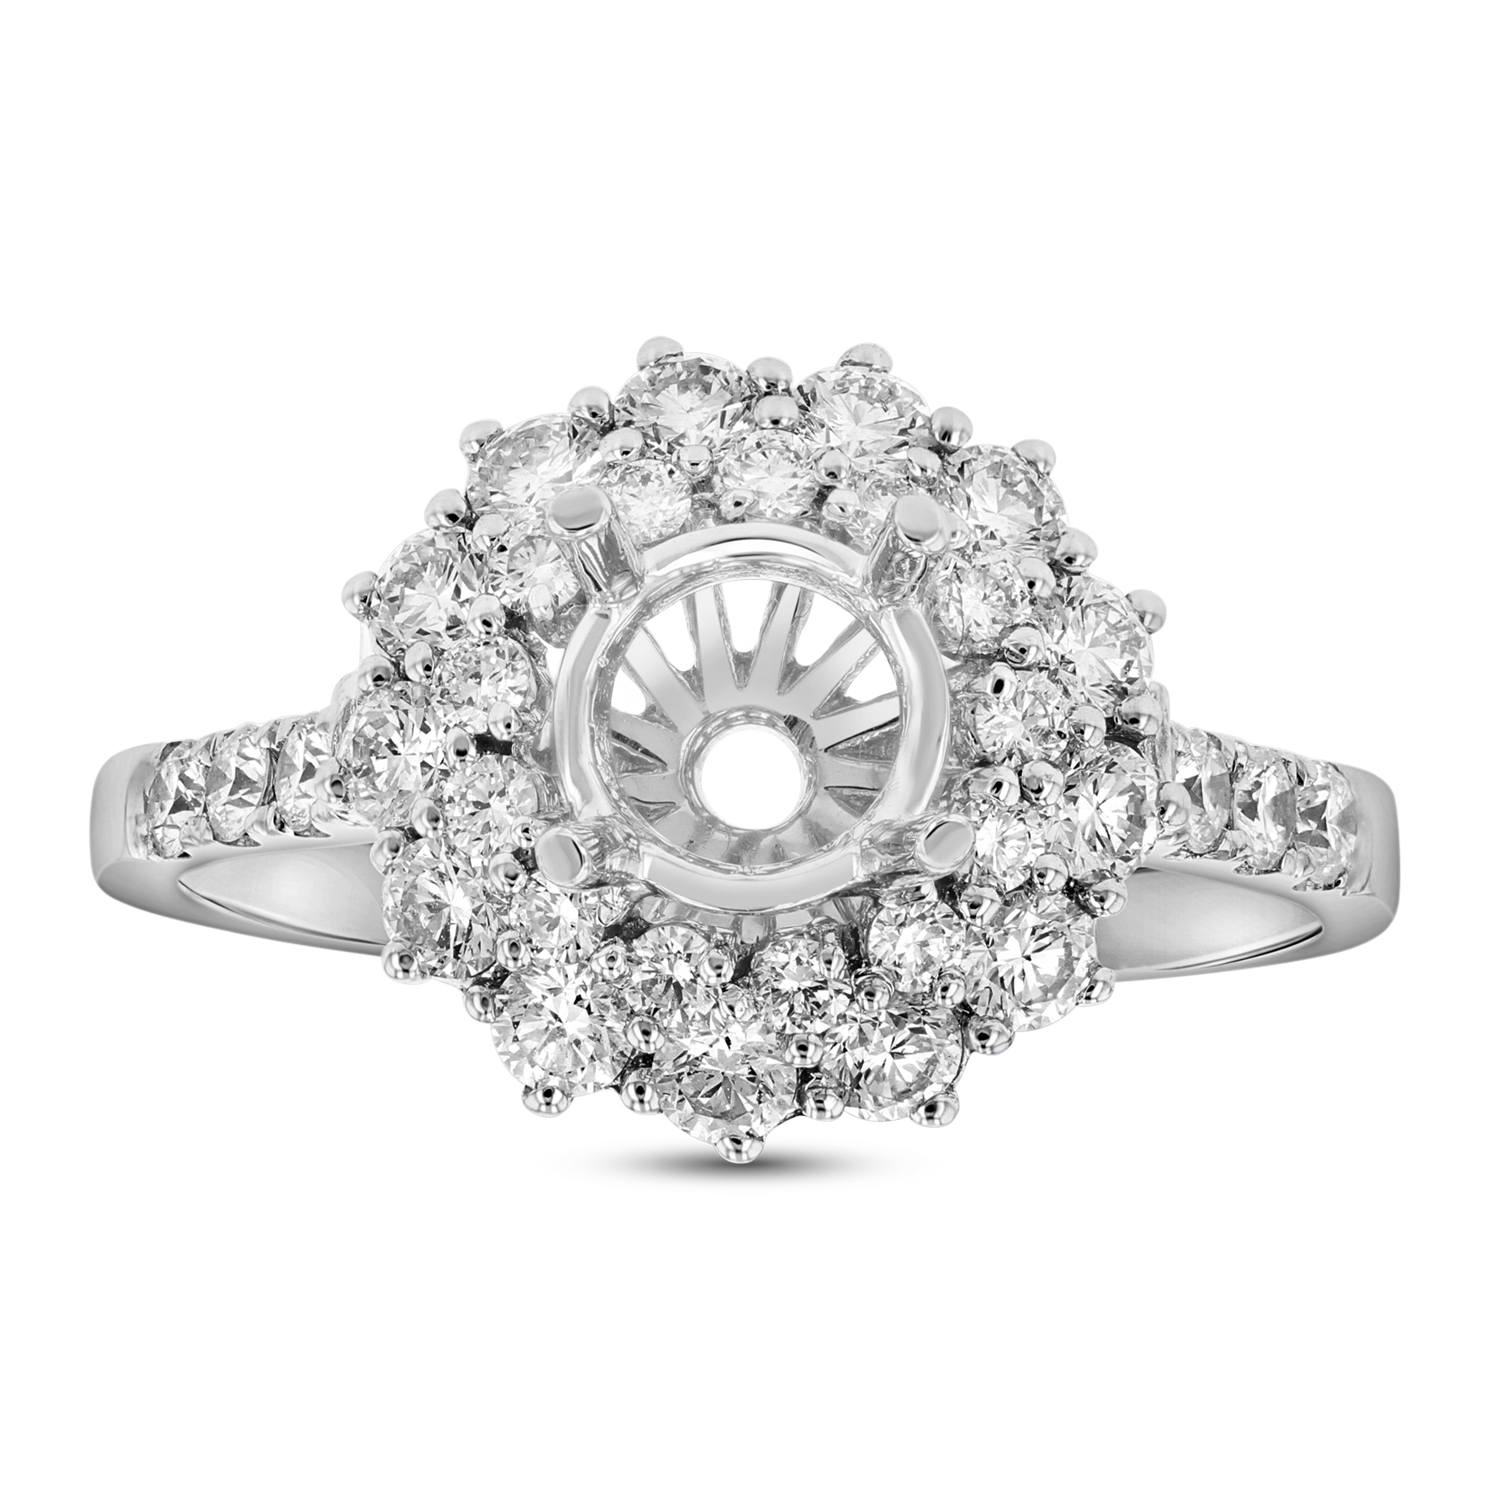 View 0.89ctw Diamond Semi Mount Engagement Ring in 18k White Gold